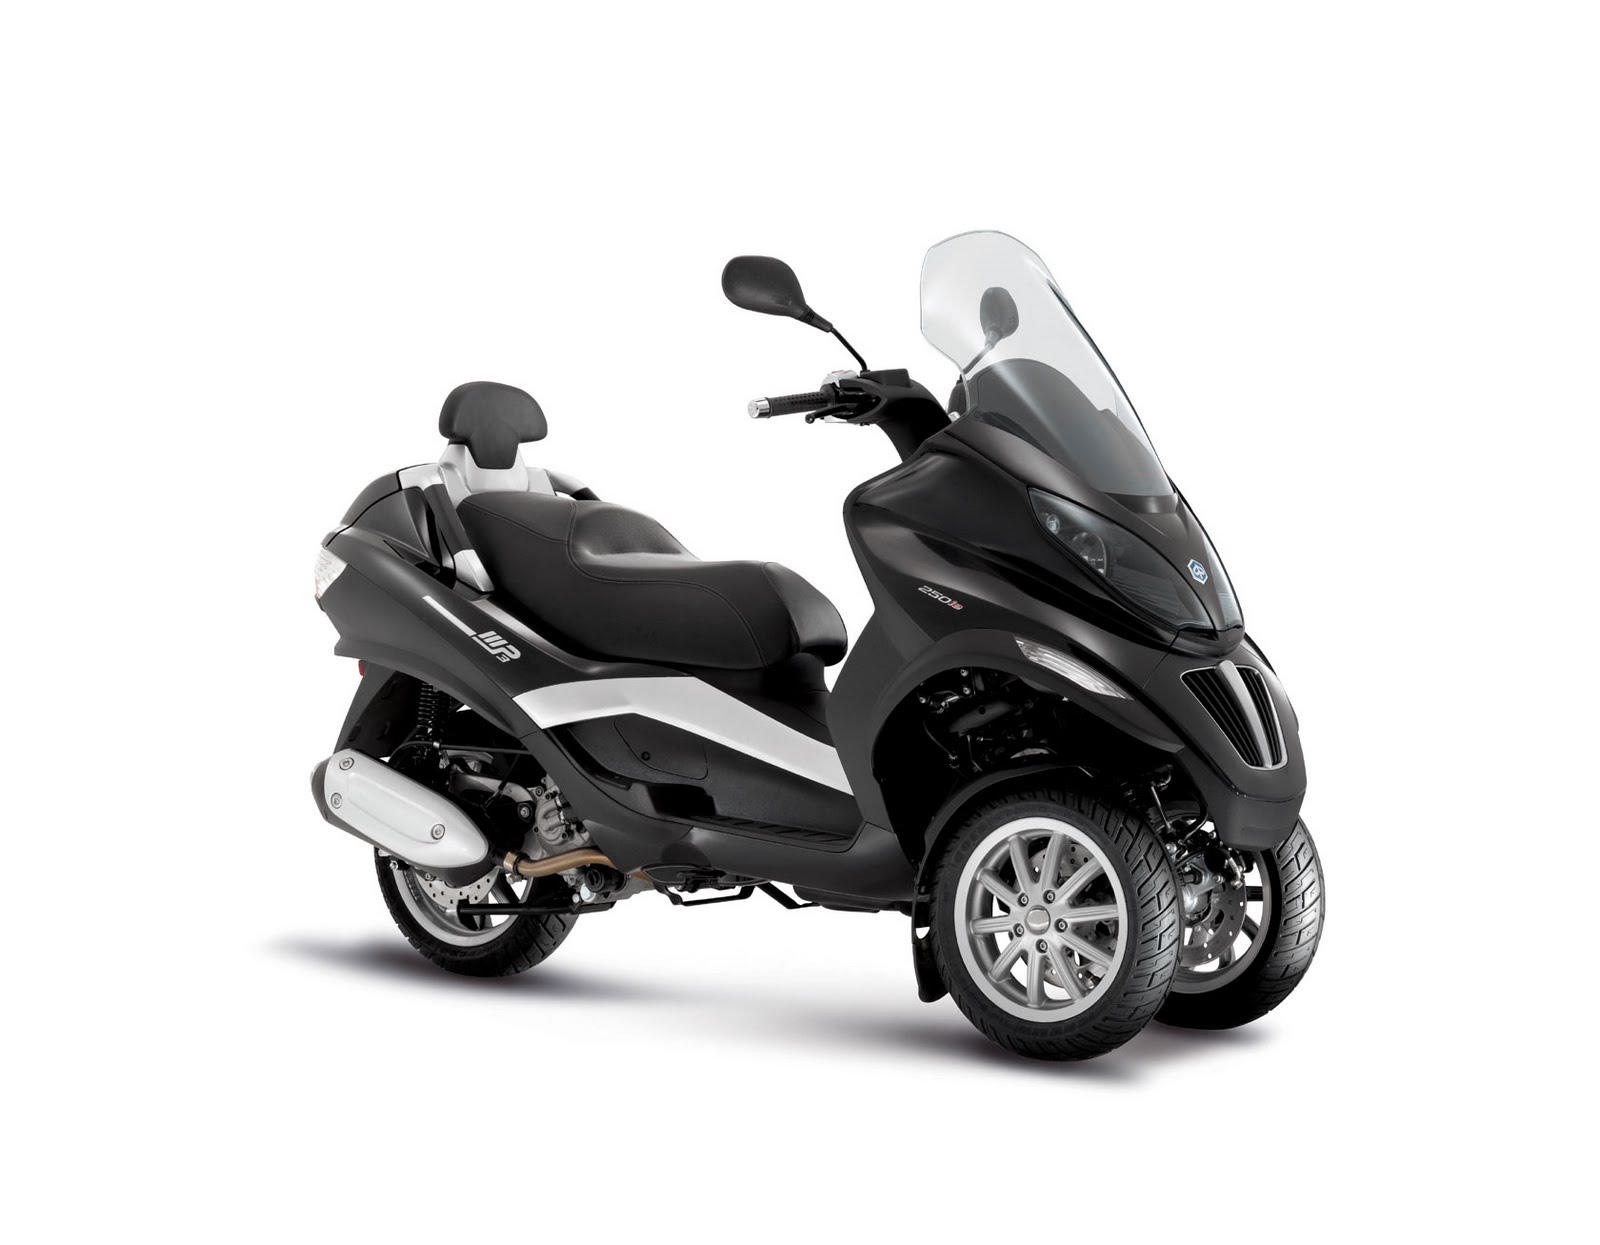 best motorcycle 2009 piaggio mp3 250. Black Bedroom Furniture Sets. Home Design Ideas